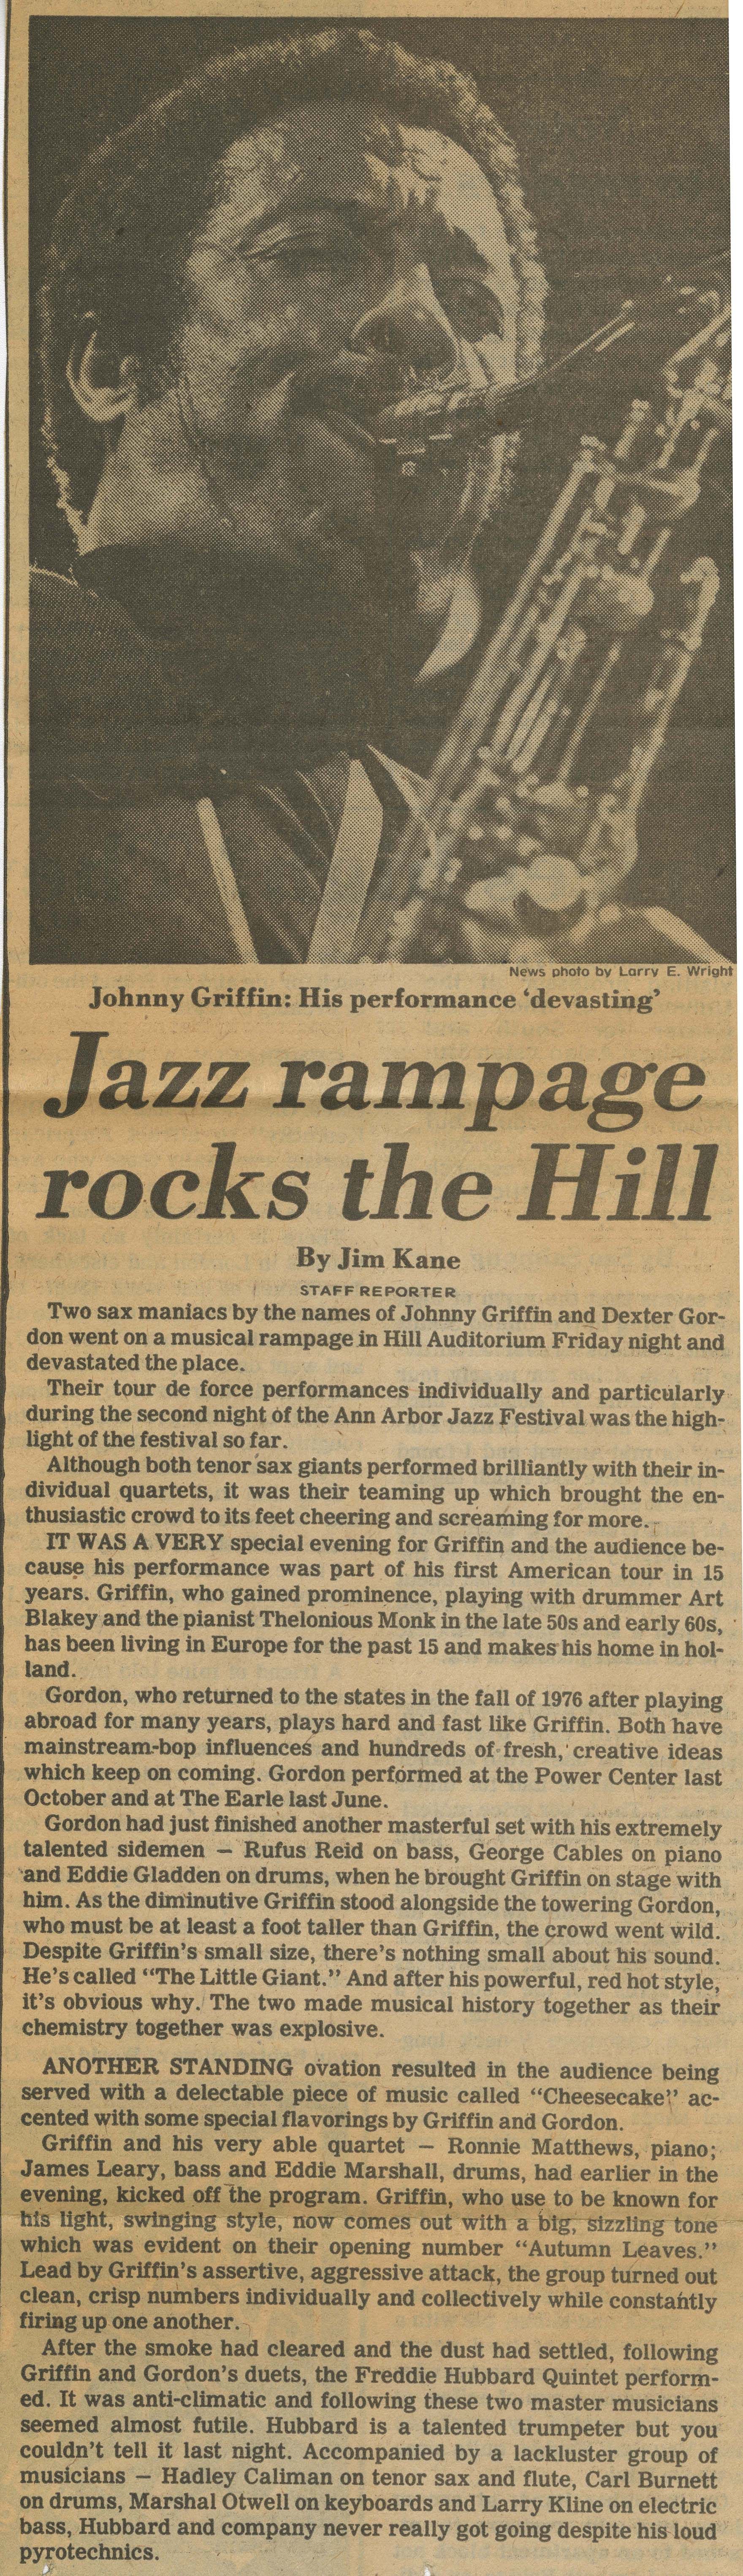 Jazz rampage rocks the Hill image